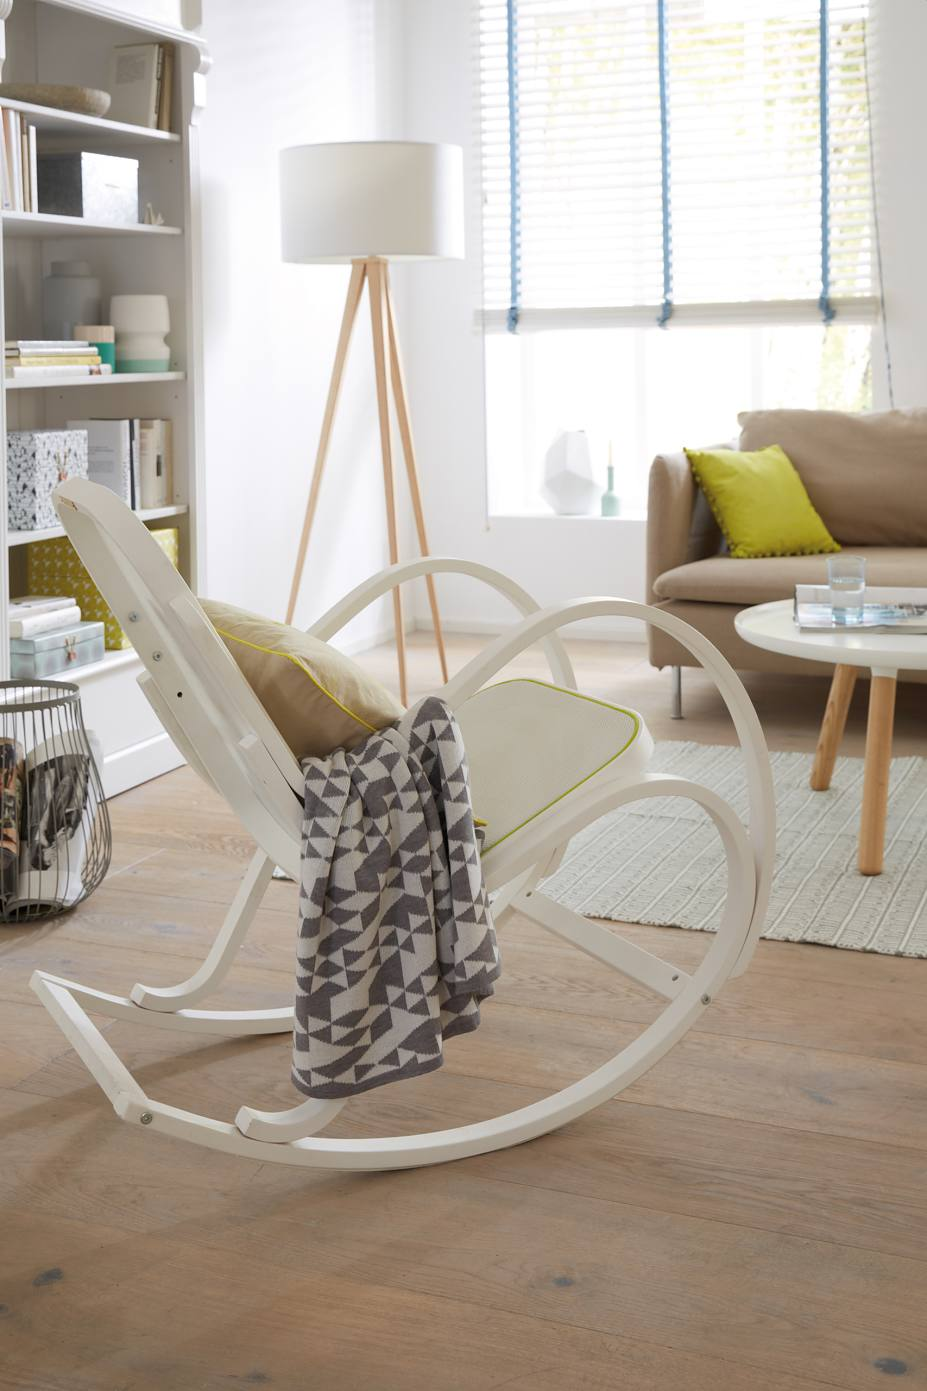 Brilliant Runner Protection For Rocking Chairs Tesa Andrewgaddart Wooden Chair Designs For Living Room Andrewgaddartcom